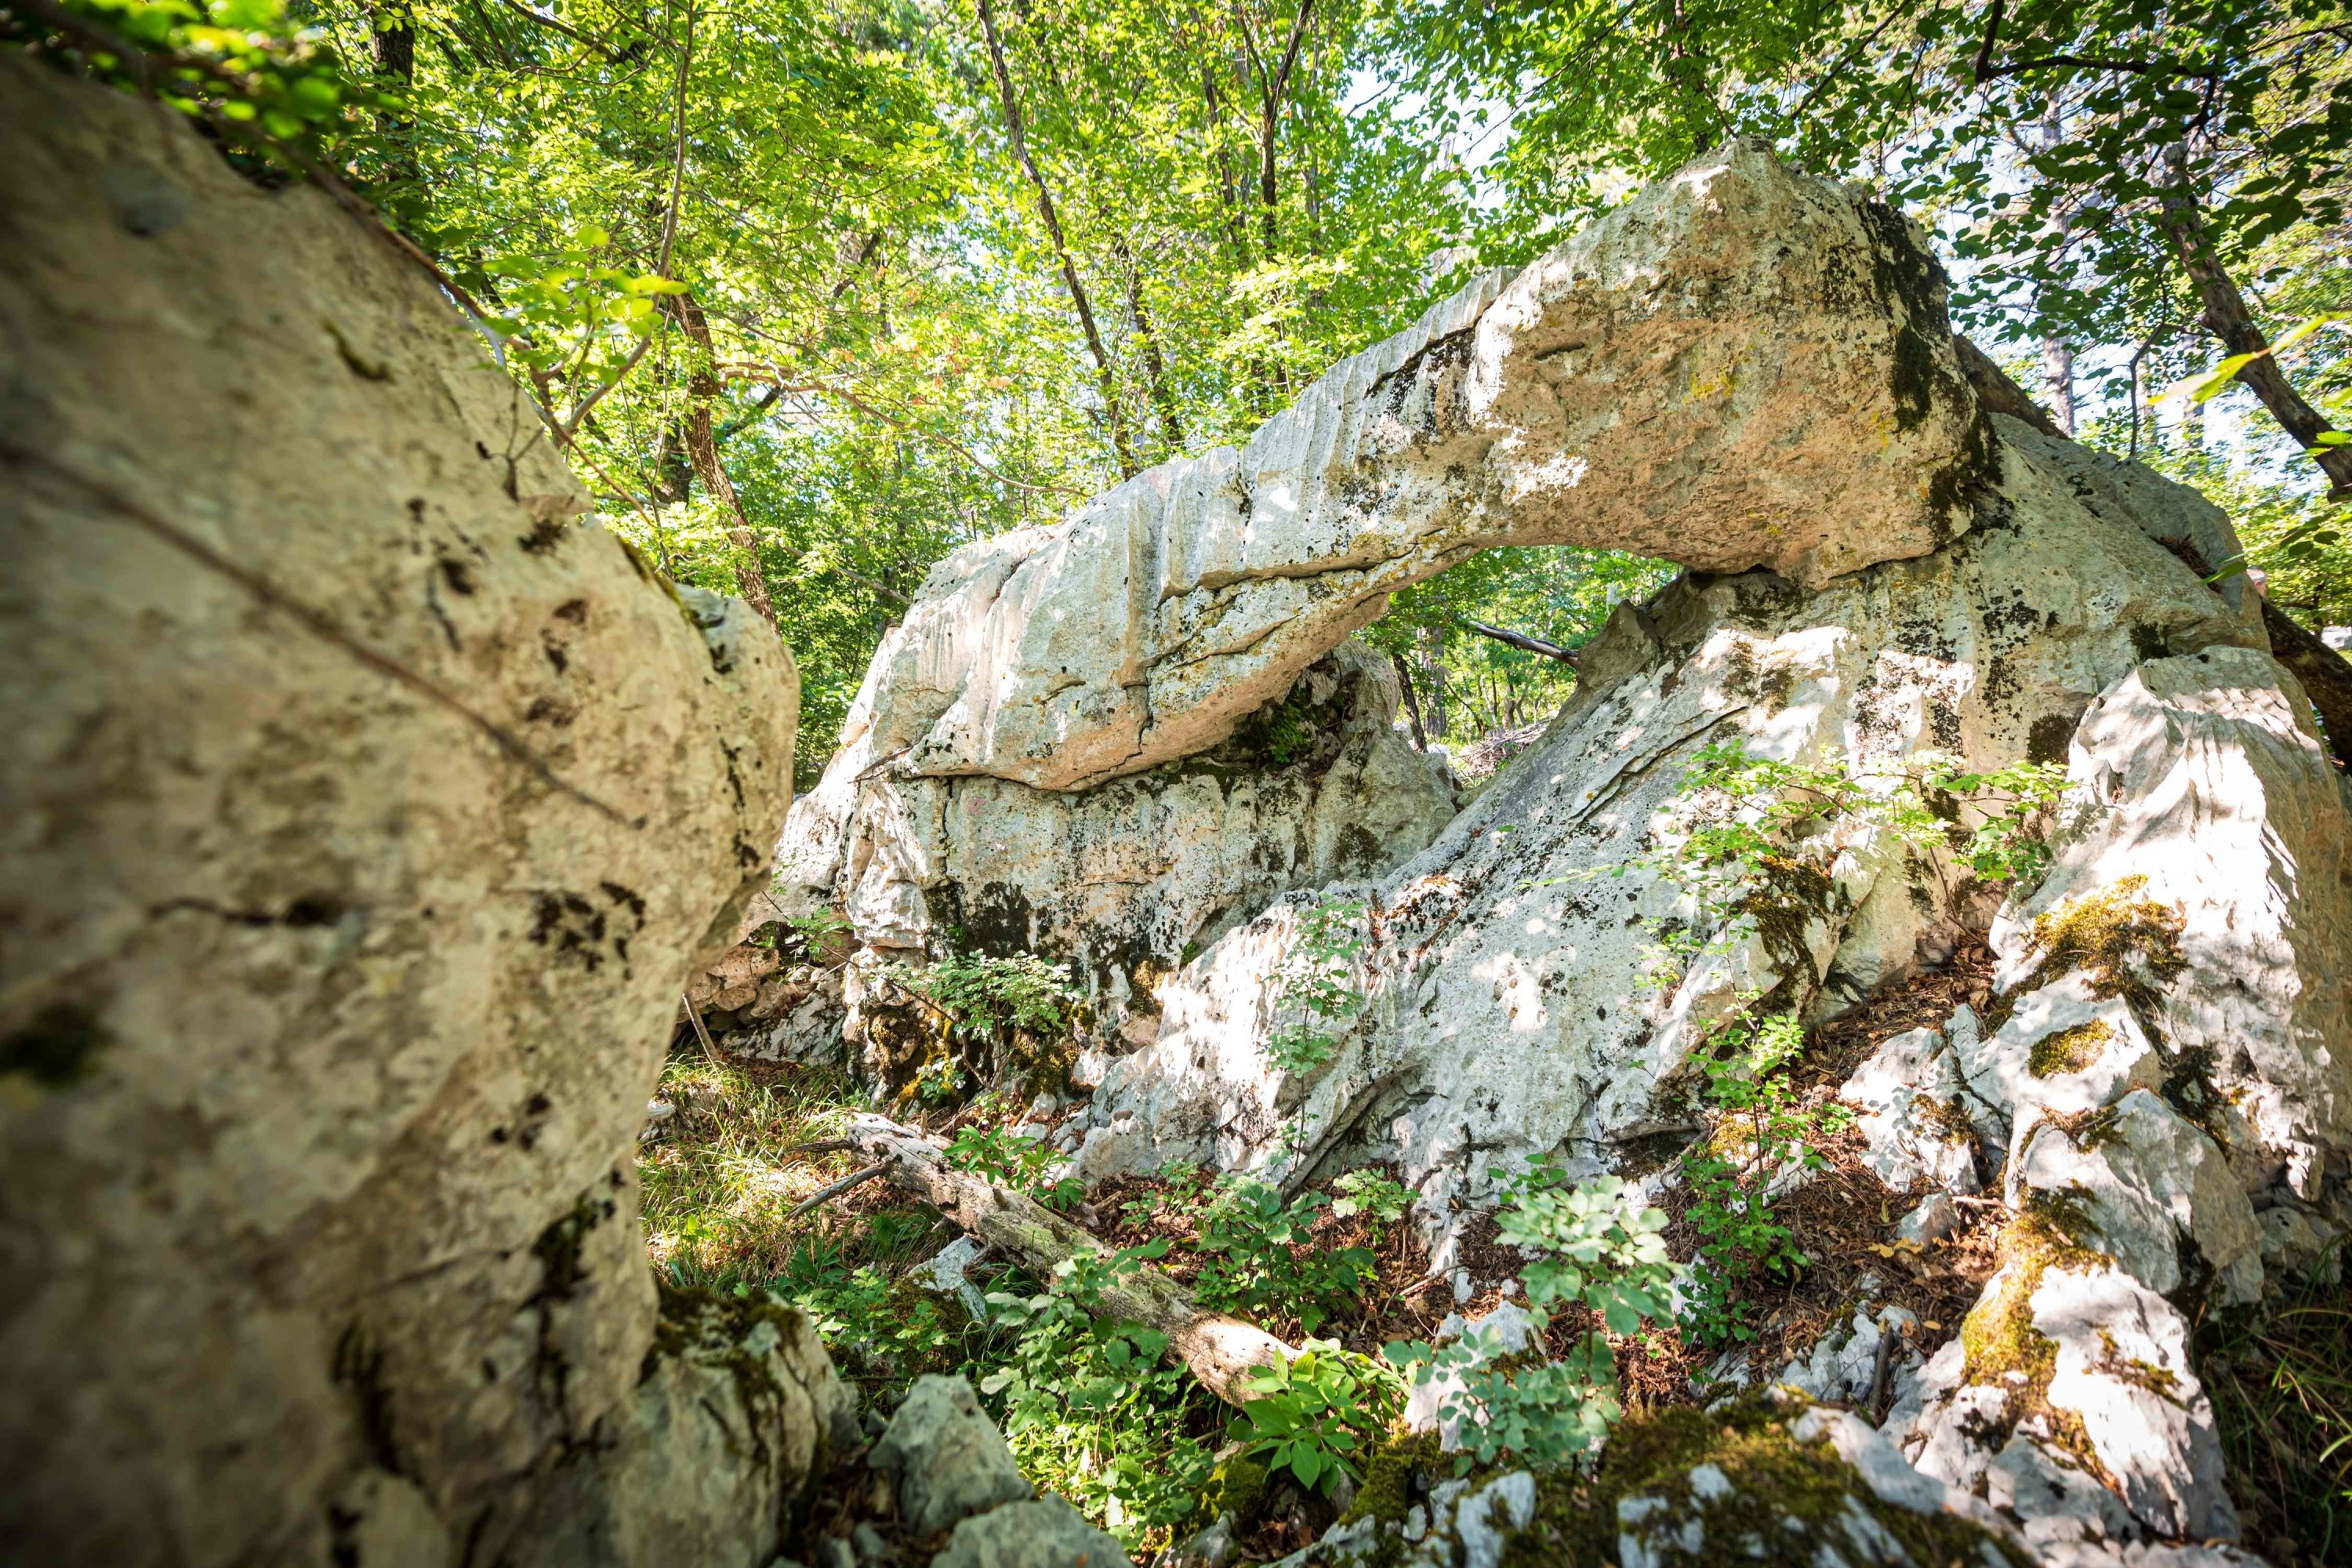 Rock formations and typical structures of the Karst landscape can be seen near Sezana, Slovenia, Aug. 7, 2021. (AFP Photo)